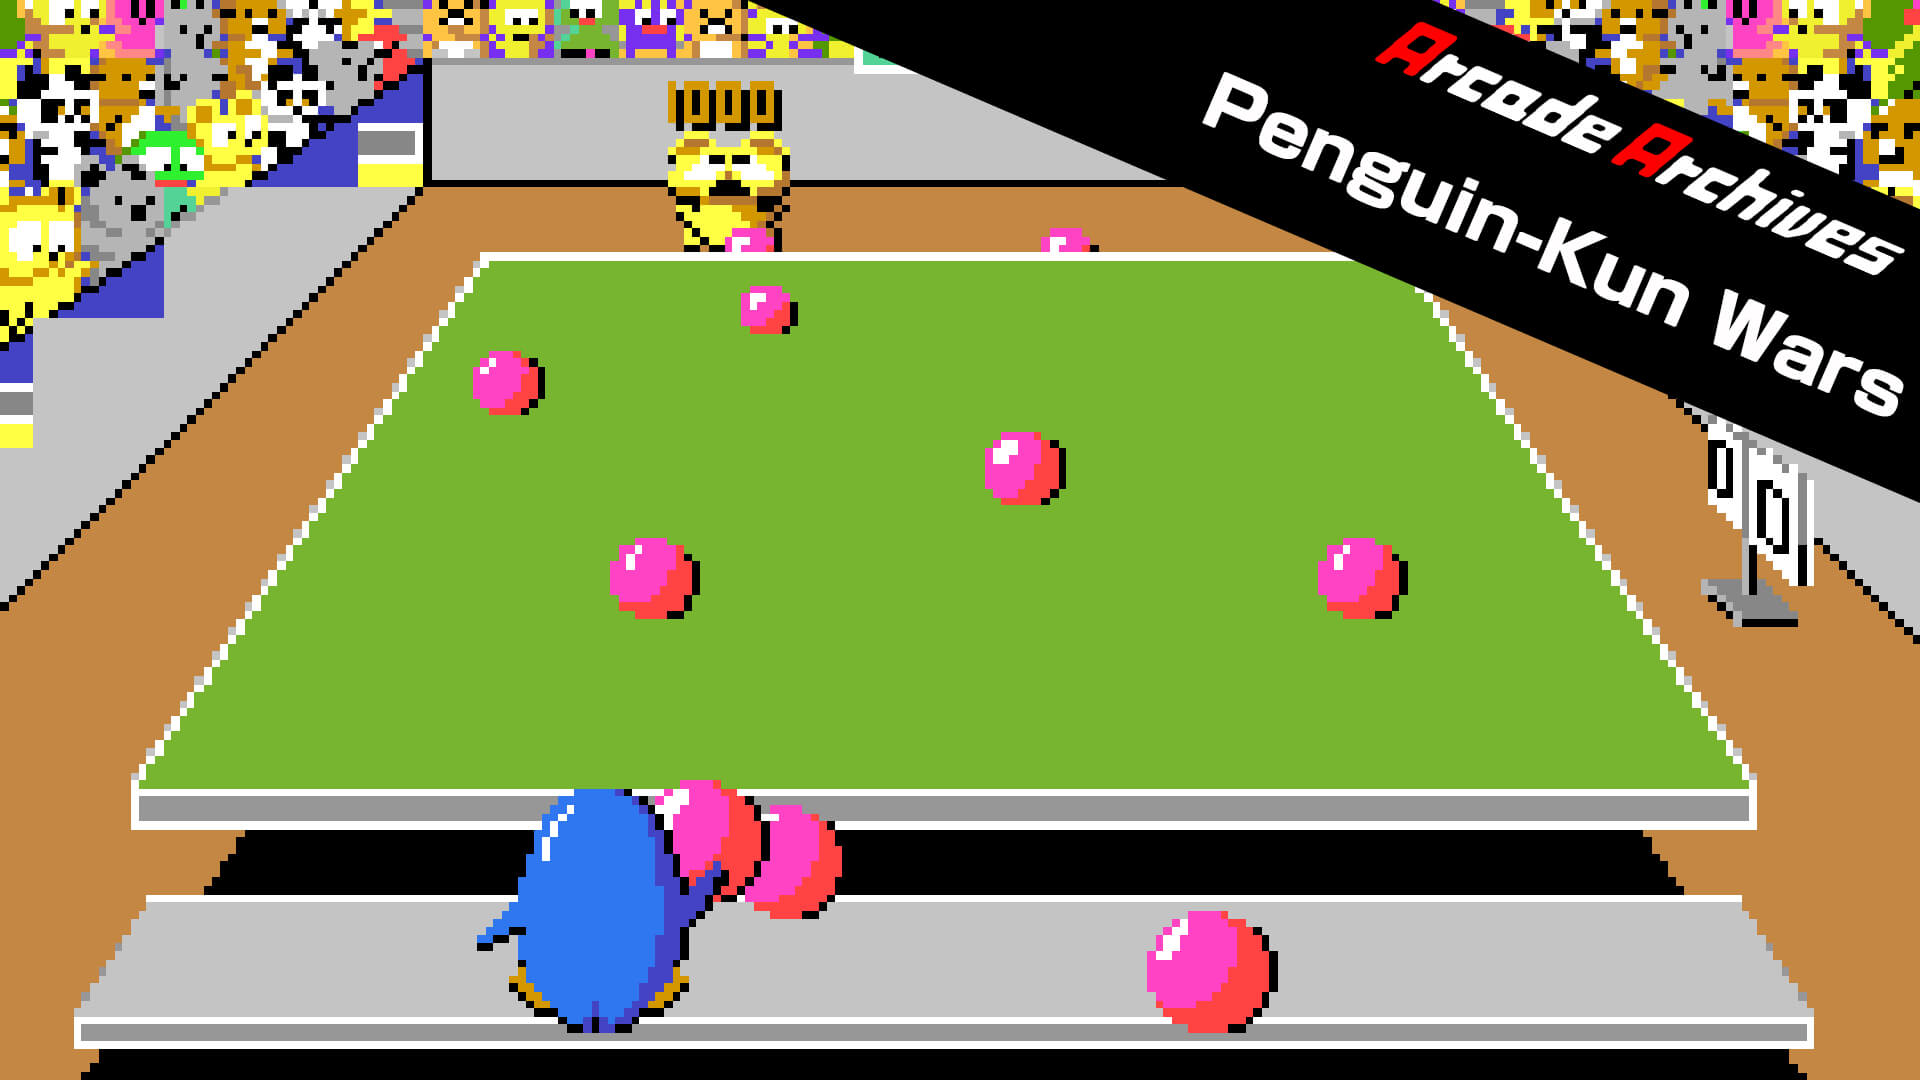 Arcade Classic PenguinKun Wars Coming to PS4 and Switch